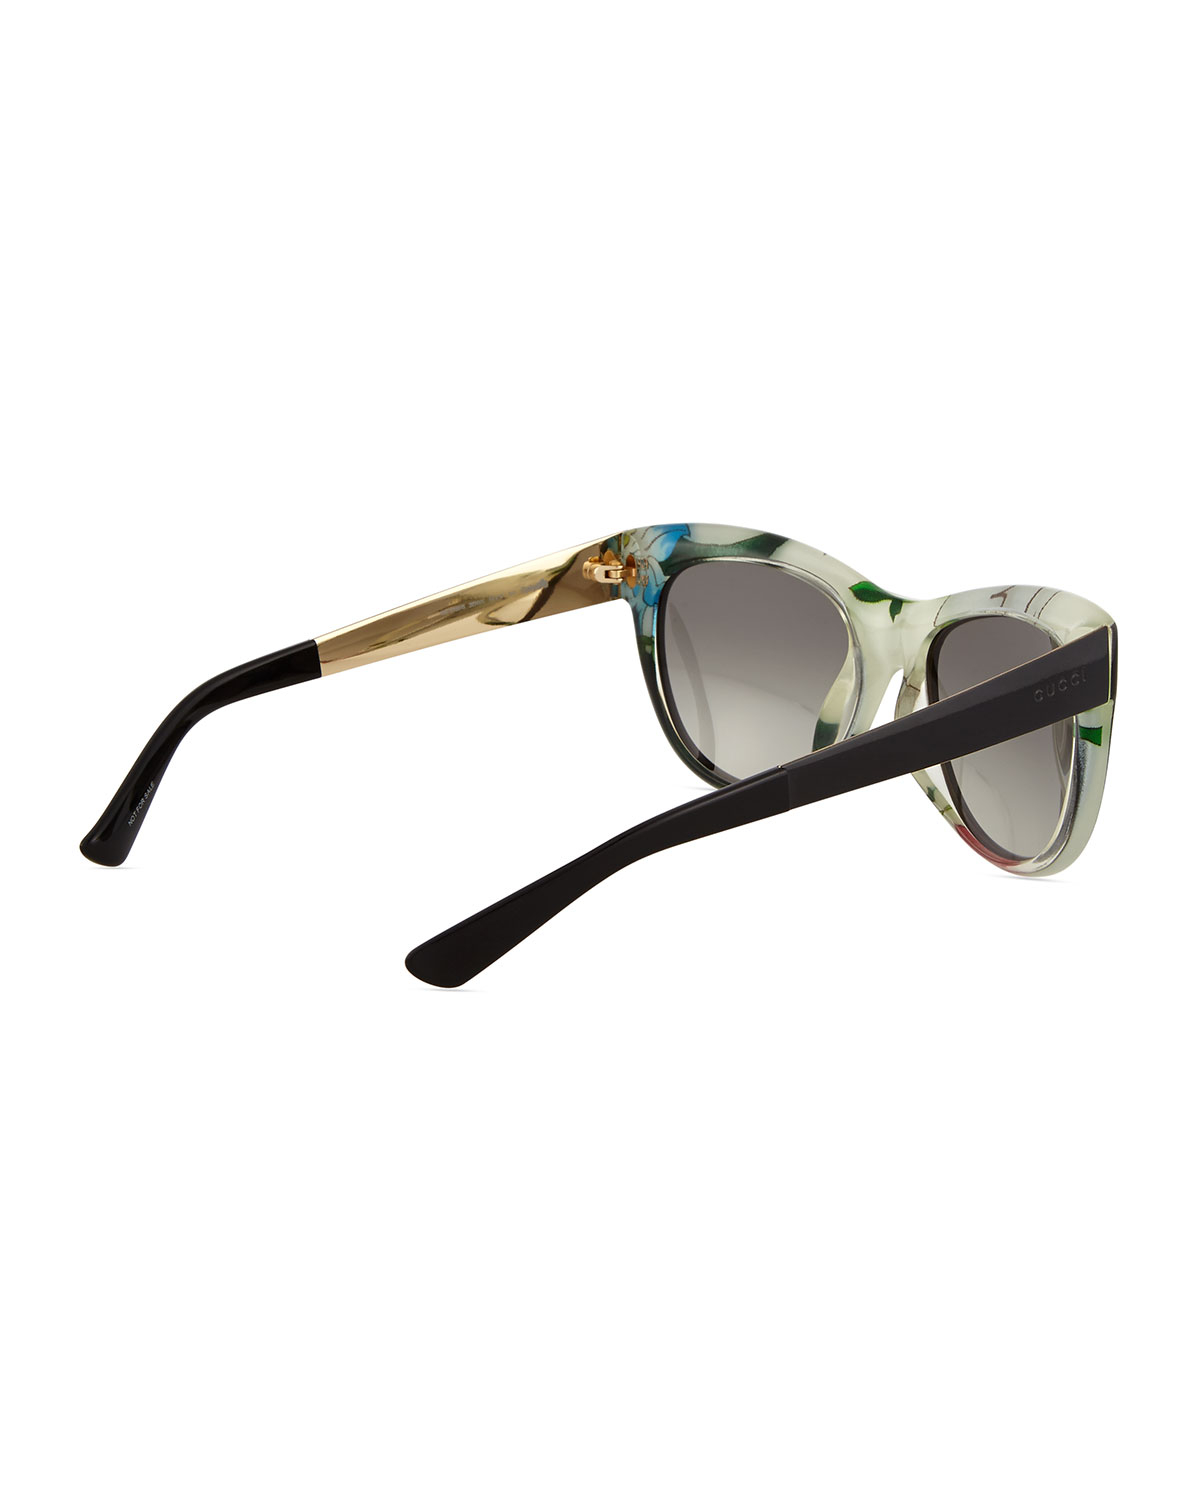 28c6bede5a28b Gucci Floral-fabric-embed Butterfly Sunglasses in Black - Lyst